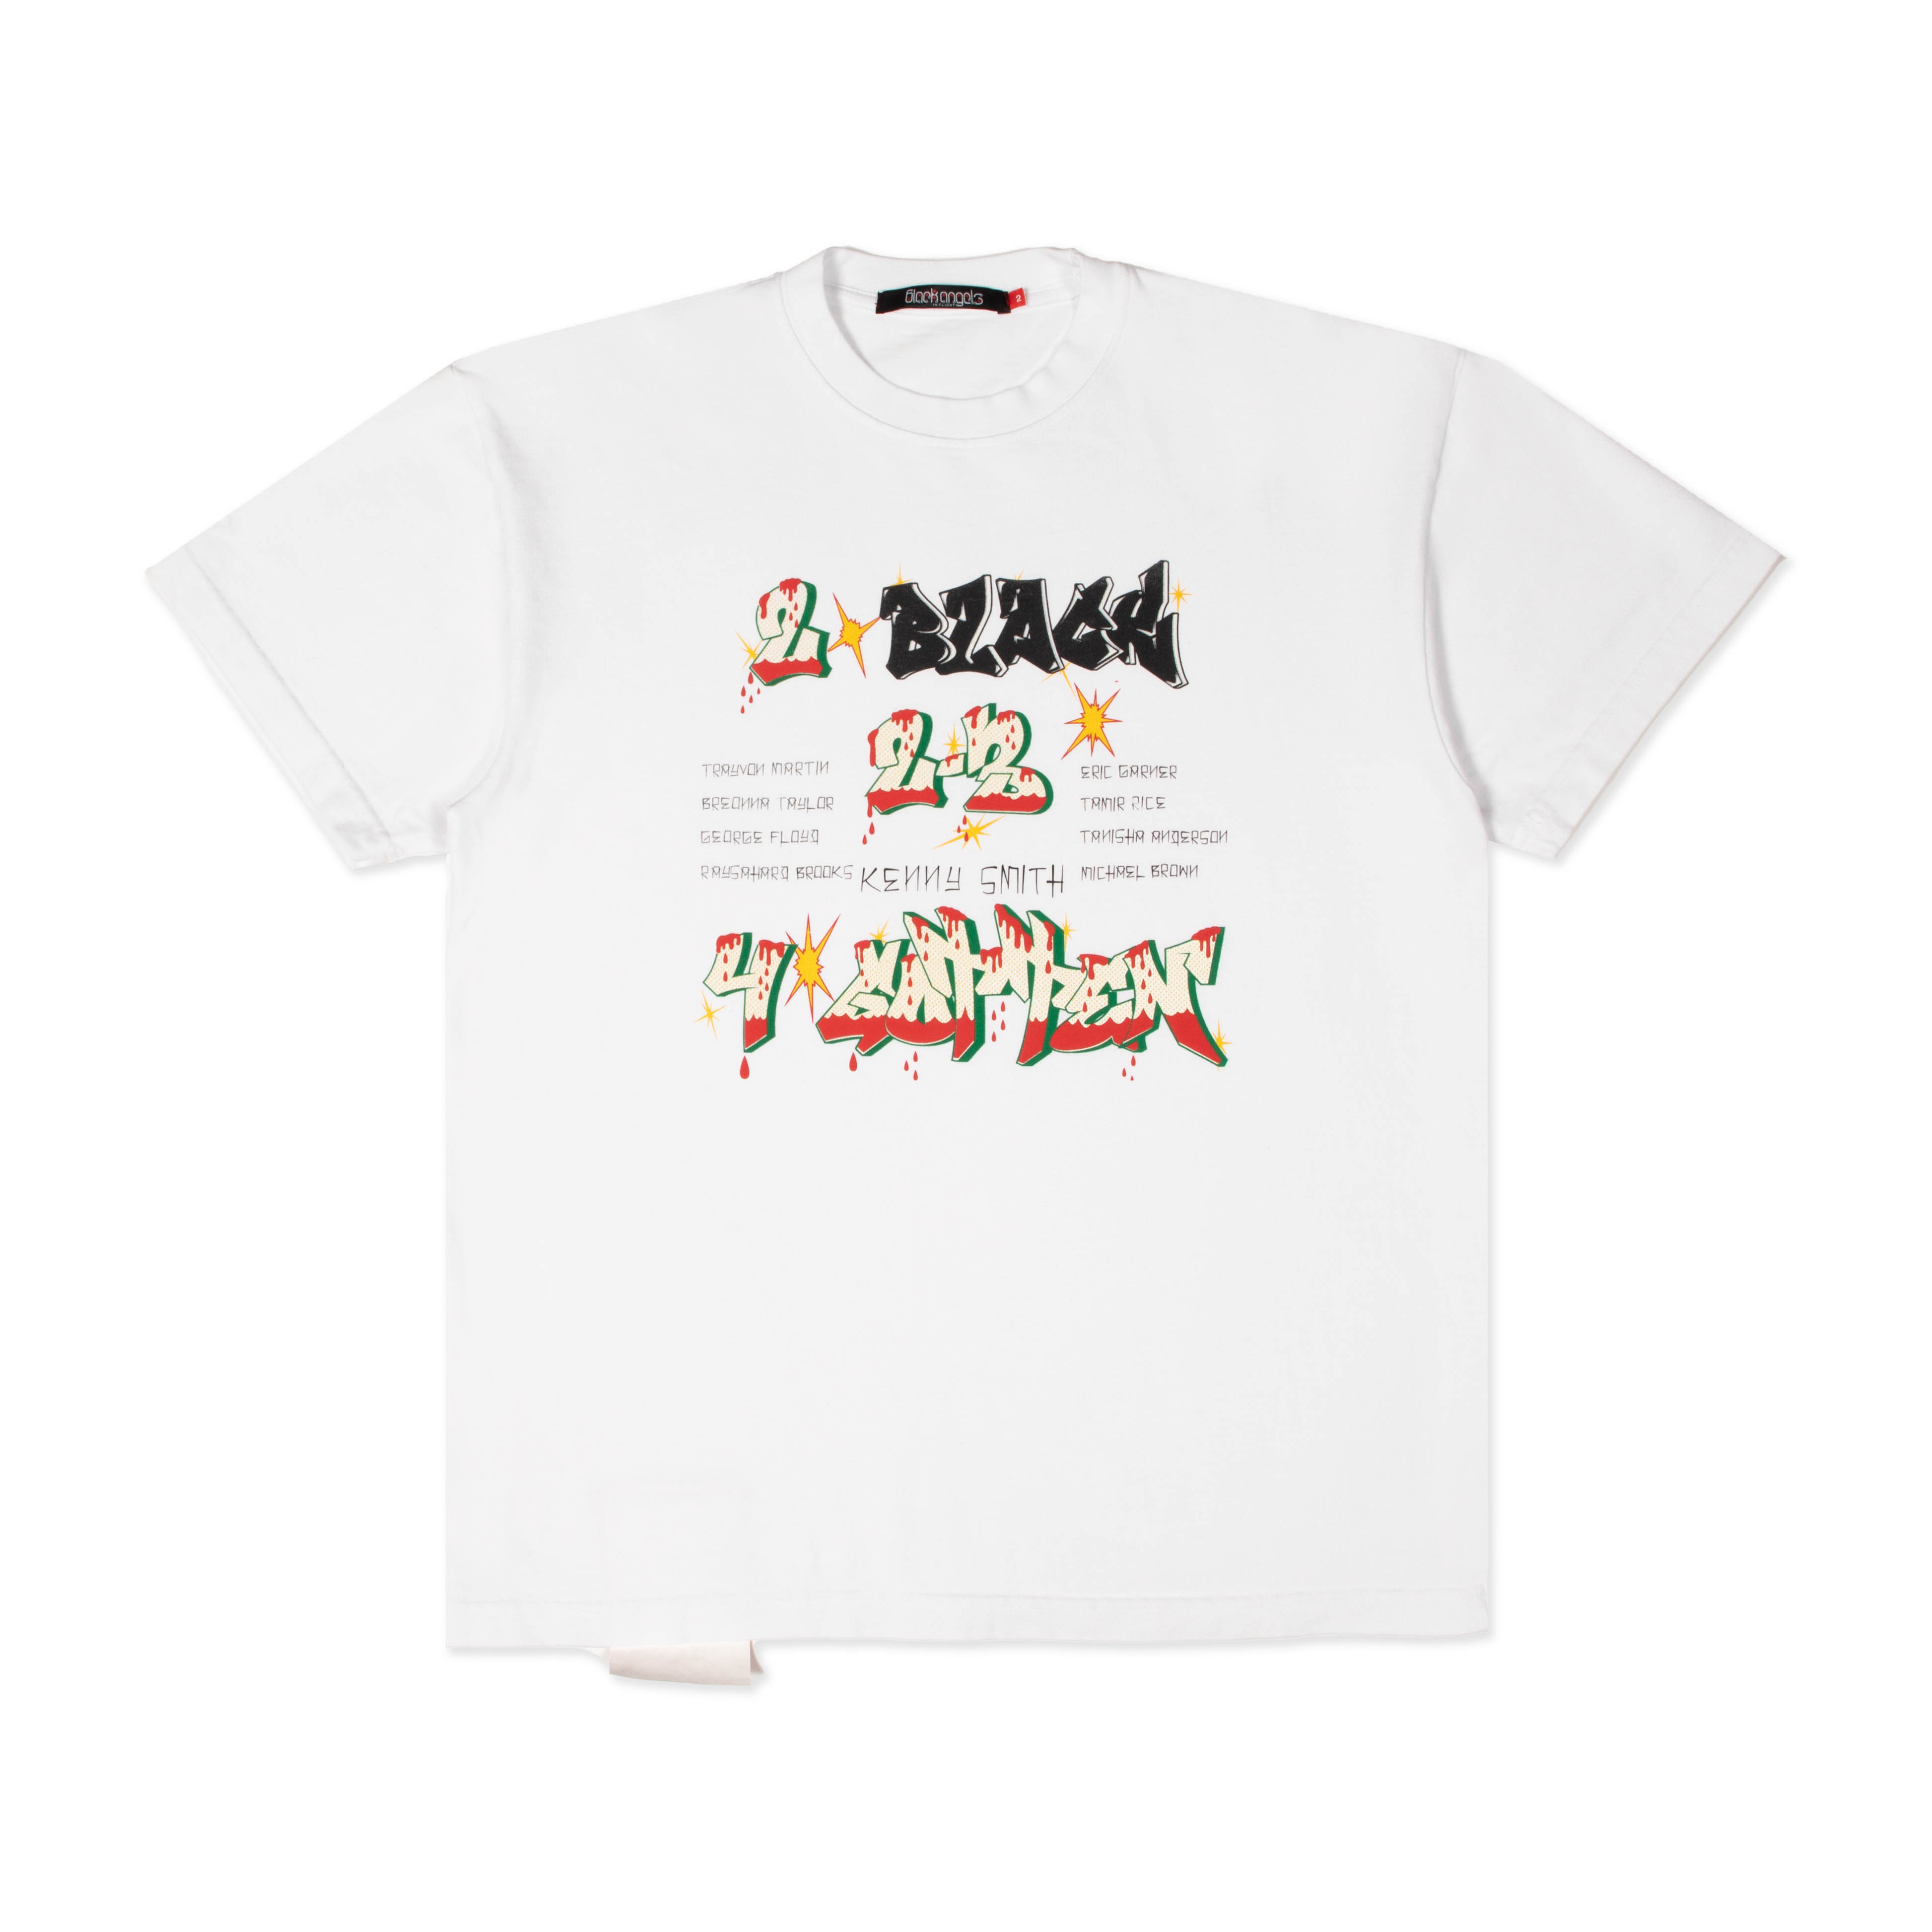 Oversized heavyweight tee. 100% cotton, 11.5 OZ Color: Optic White Cut/Sewn and printed in Los Angeles Tear away tyvek luggage label Red accent puff print All items are in stock. Please allow 1-2 business days for processing and 3-5 business days for shipping domestically in the US, 7-10 business days internationally.